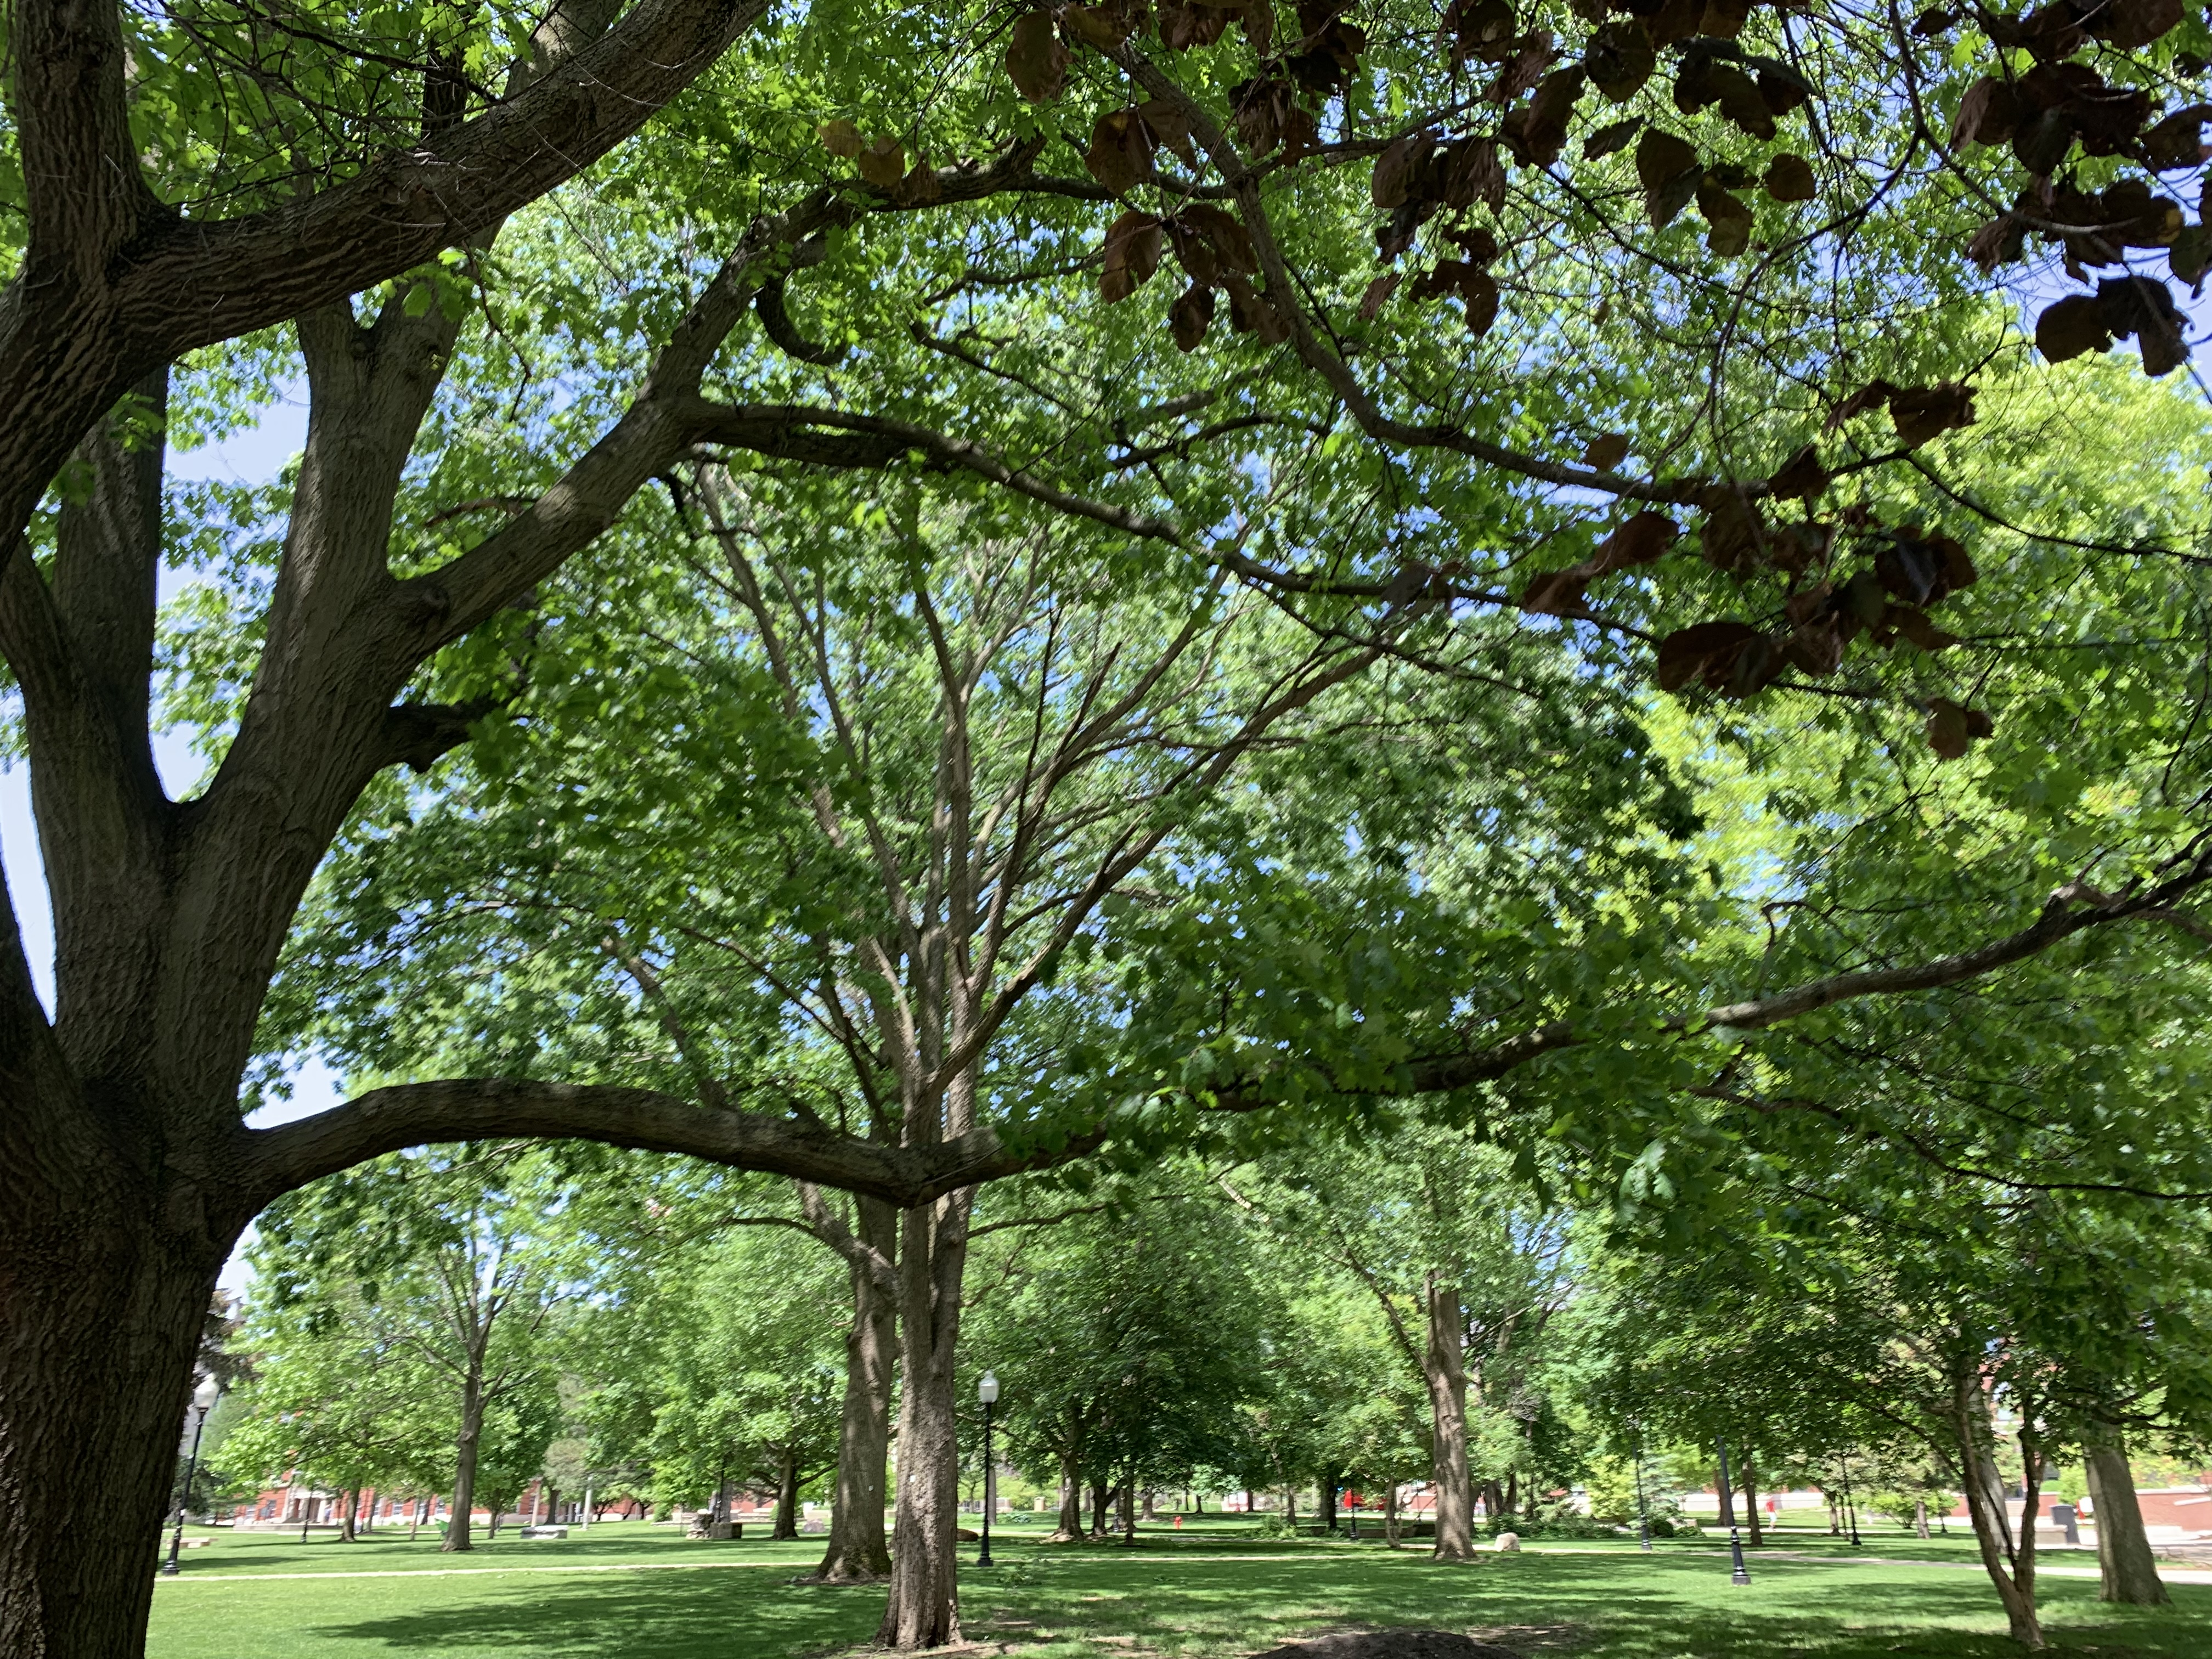 First Fell Arboretum map now available - News - Illinois State on